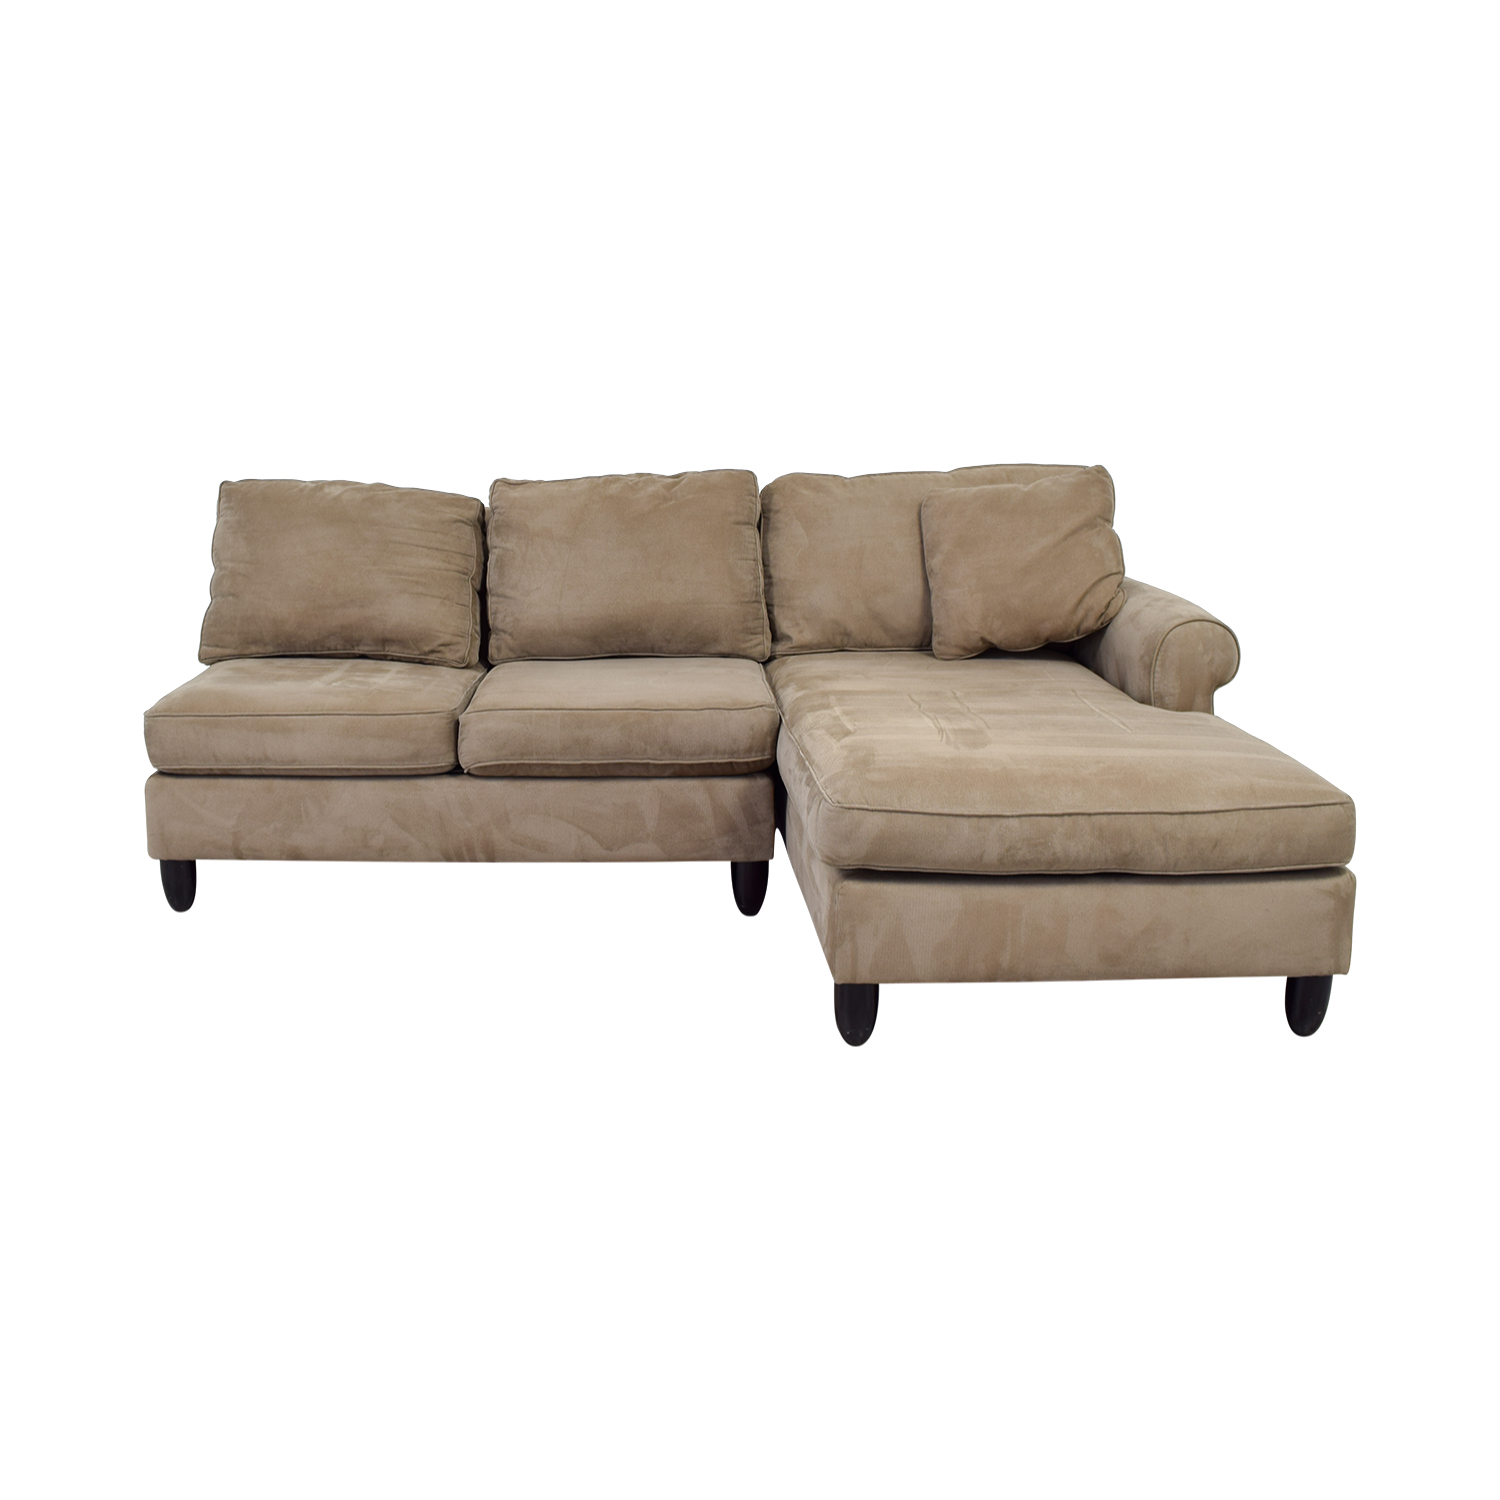 Haverty's Haverty's Tan Chaise Sectional Sectionals